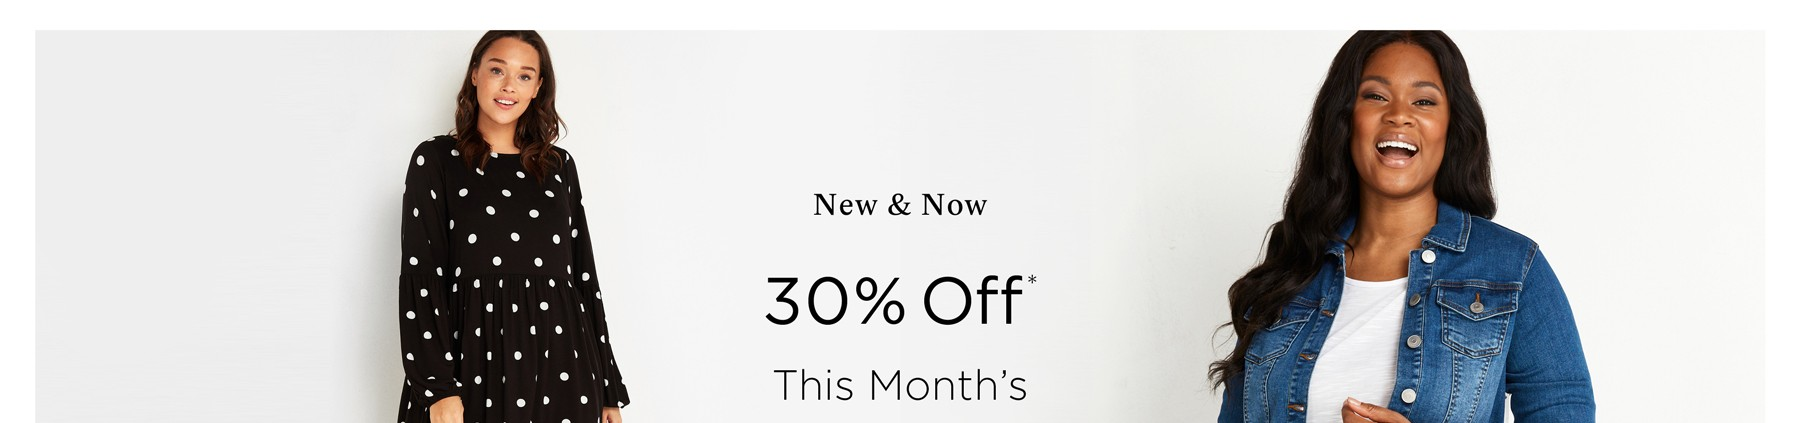 30% Off* This Month's Must-Haves - Prices as Marked